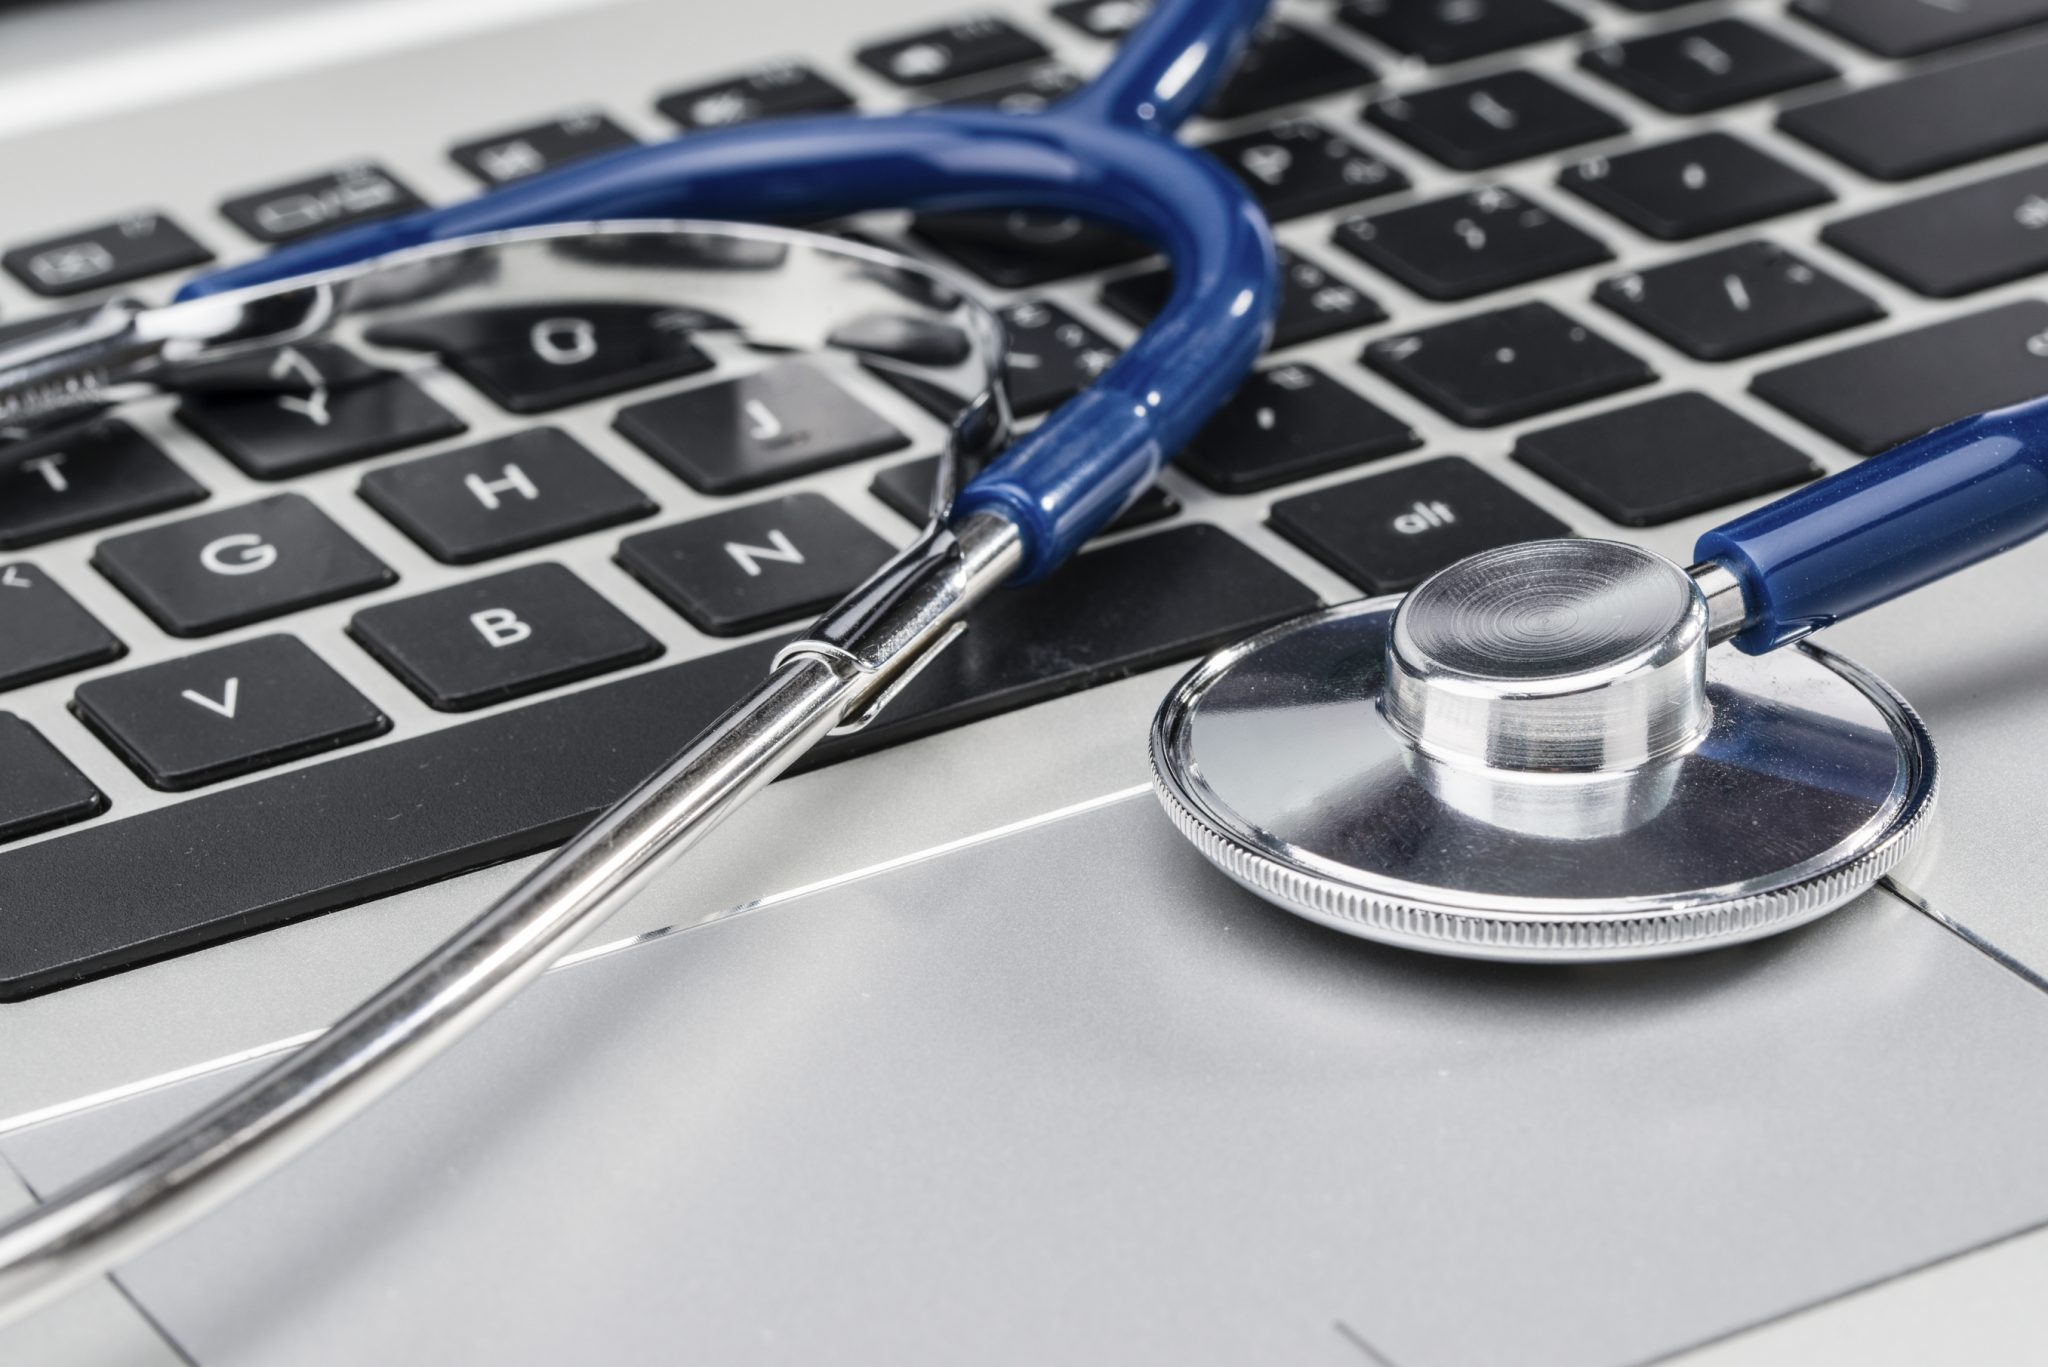 Medical Research, stethoscope on laptop keyboard, doctor workplace